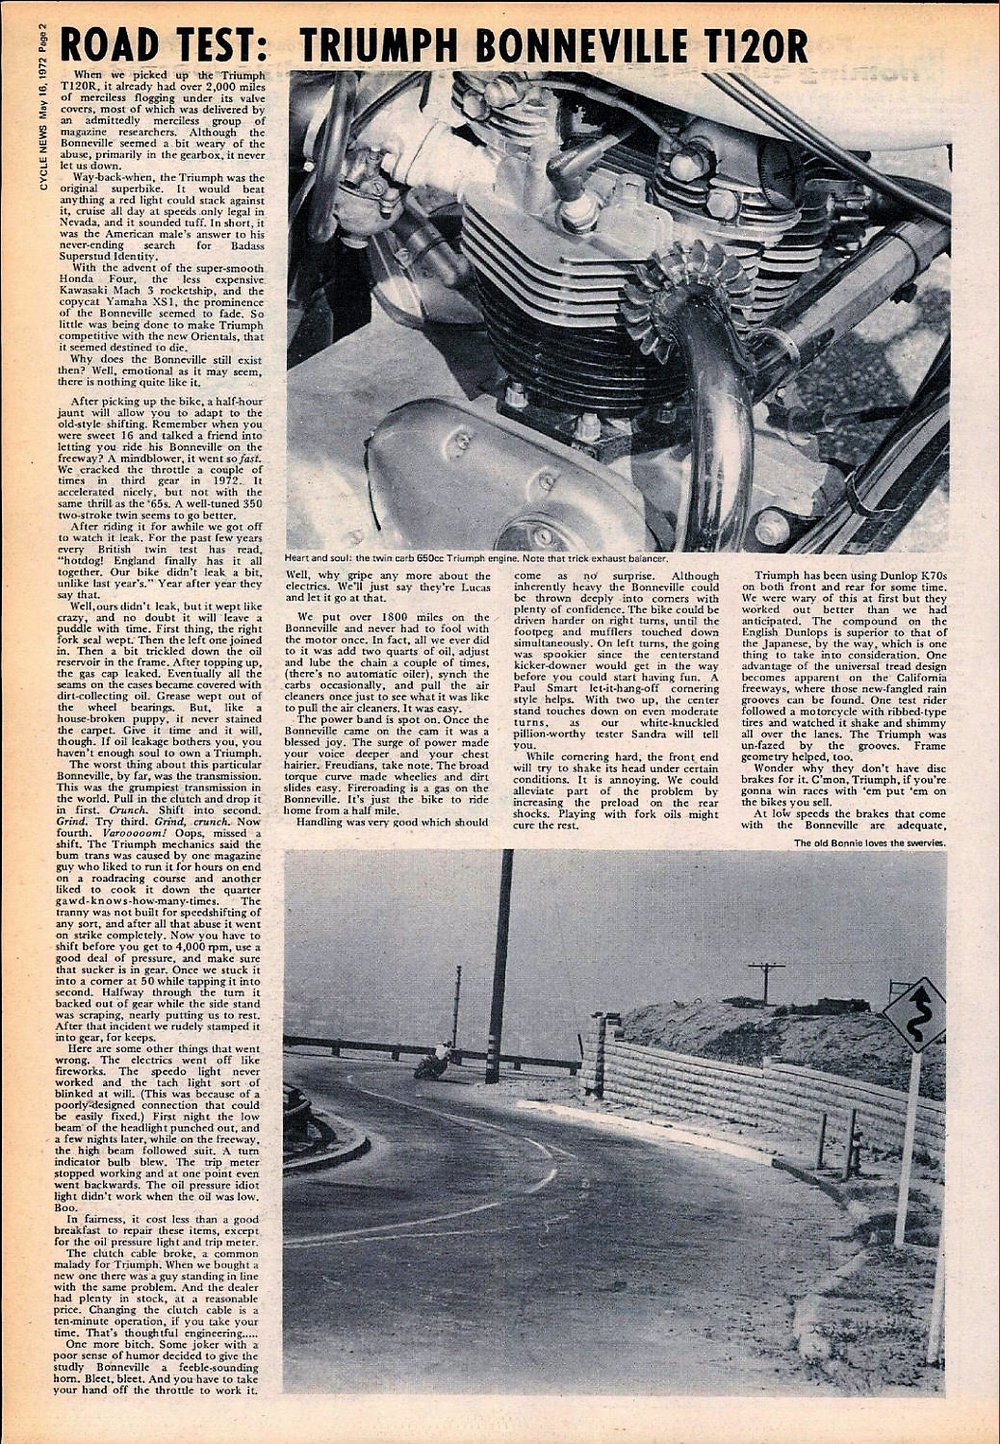 1972 Triuimph T120R Bonneville road test 01.jpg